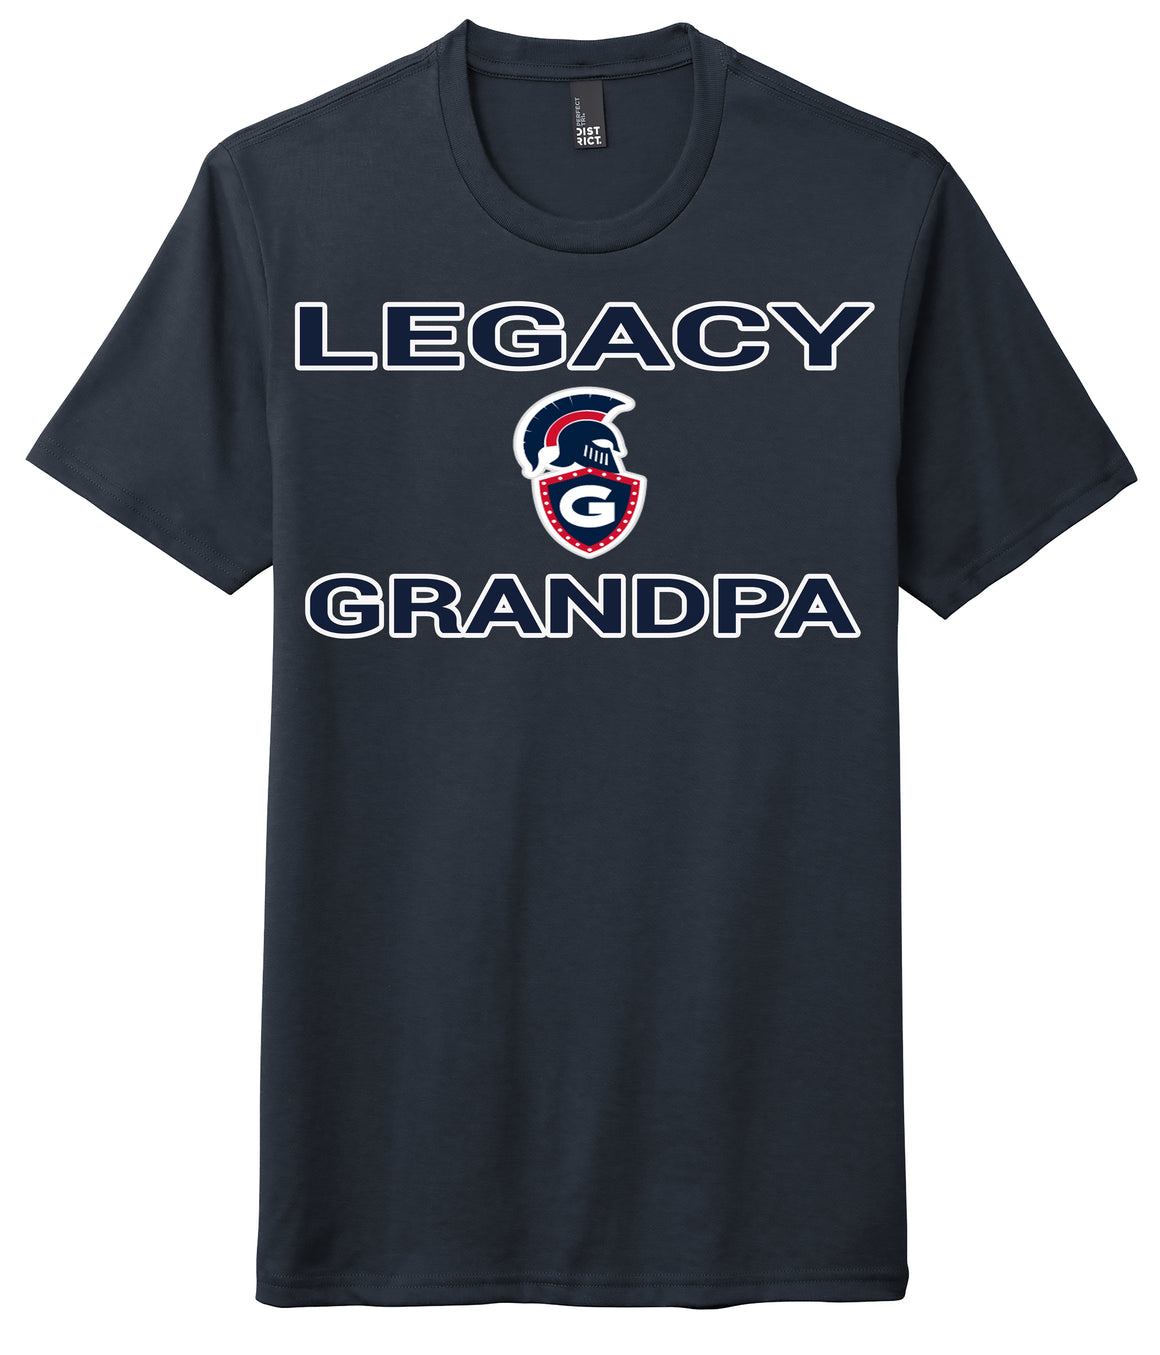 Legacy Traditional School Glendale - Grandpa Shirt